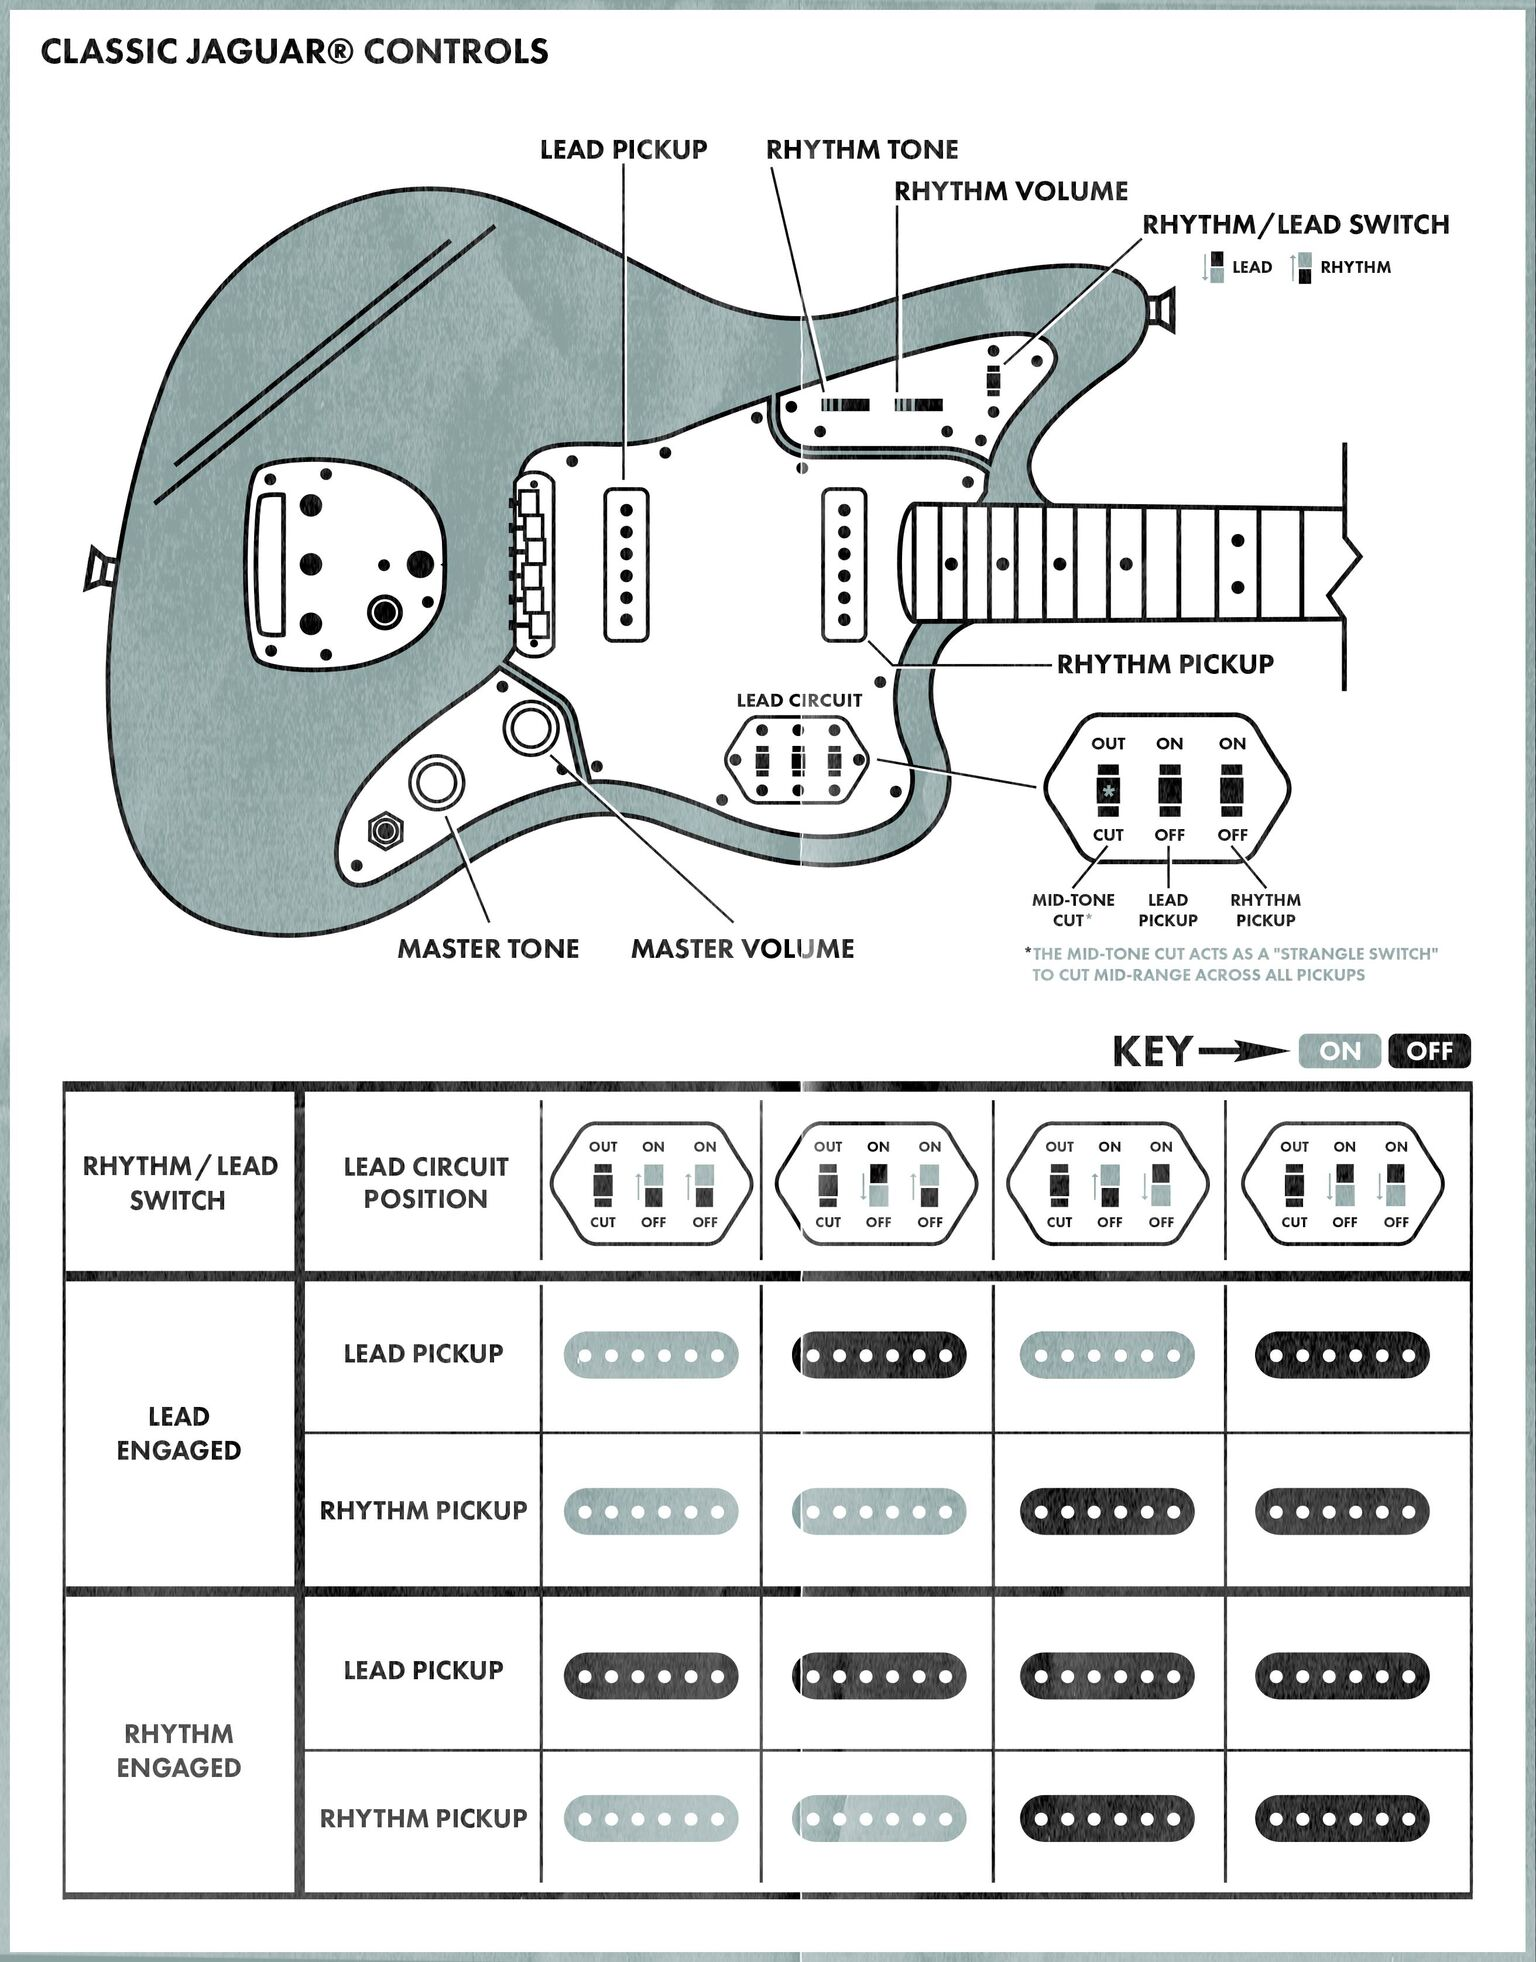 Jaguar Guitar Wiring Archive Of Automotive Diagram Kit Controls Explained Fender Rh Com Uk Upgrade